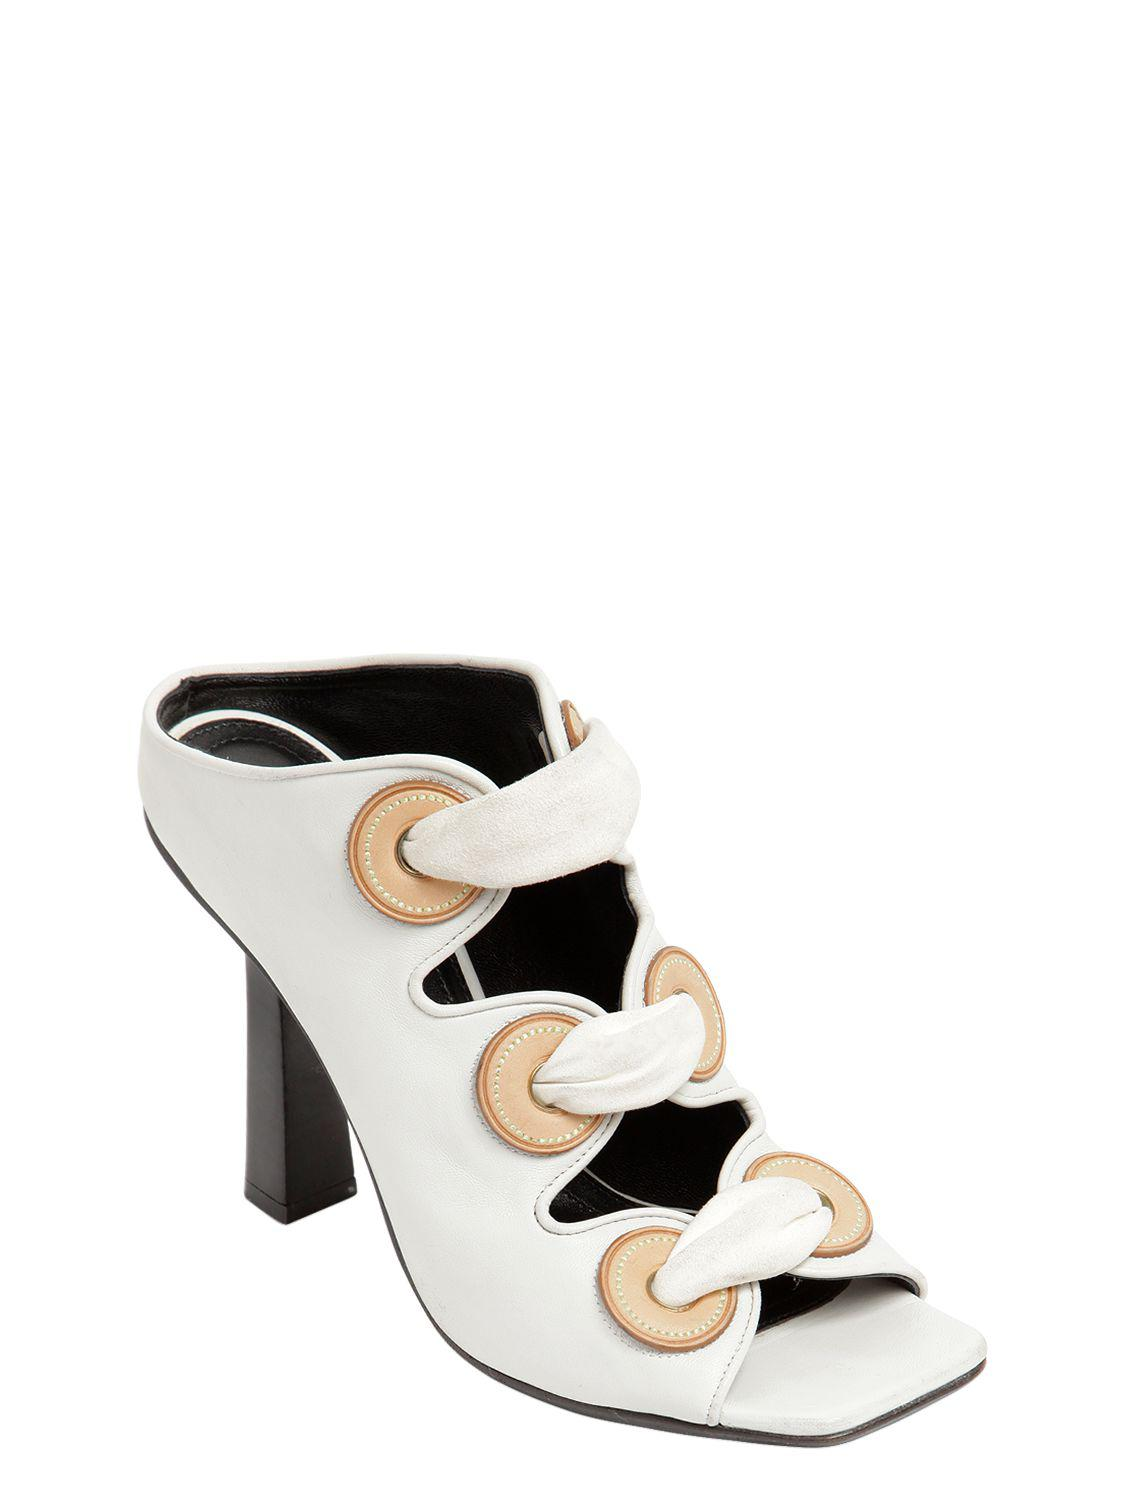 J.W.Anderson 100MM LEATHER MULE SANDAL W/ EYELETS